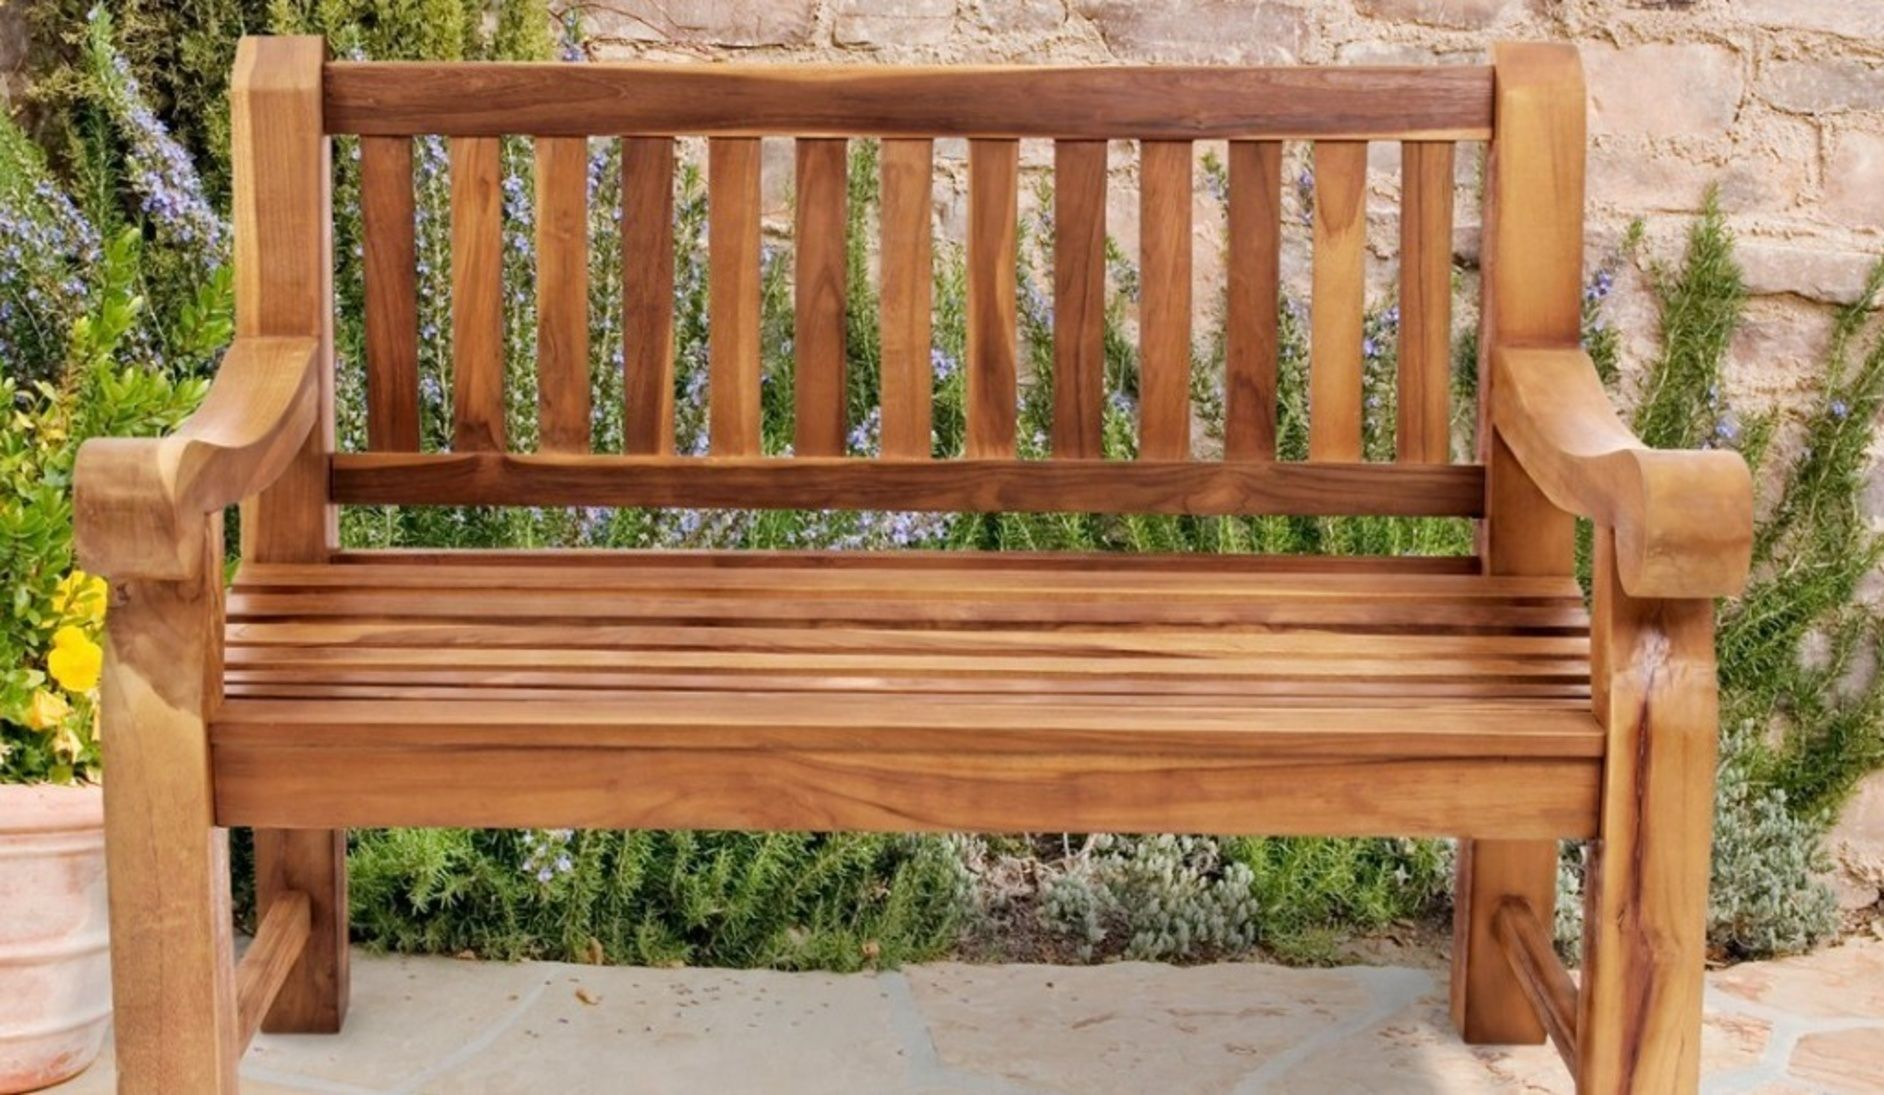 Tips For Polishing Teak Wood Use A Teak Protectant Before Proceeding To Polish Teak Wood I Outdoor Wood Furniture Teak Outdoor Furniture Wood Patio Furniture